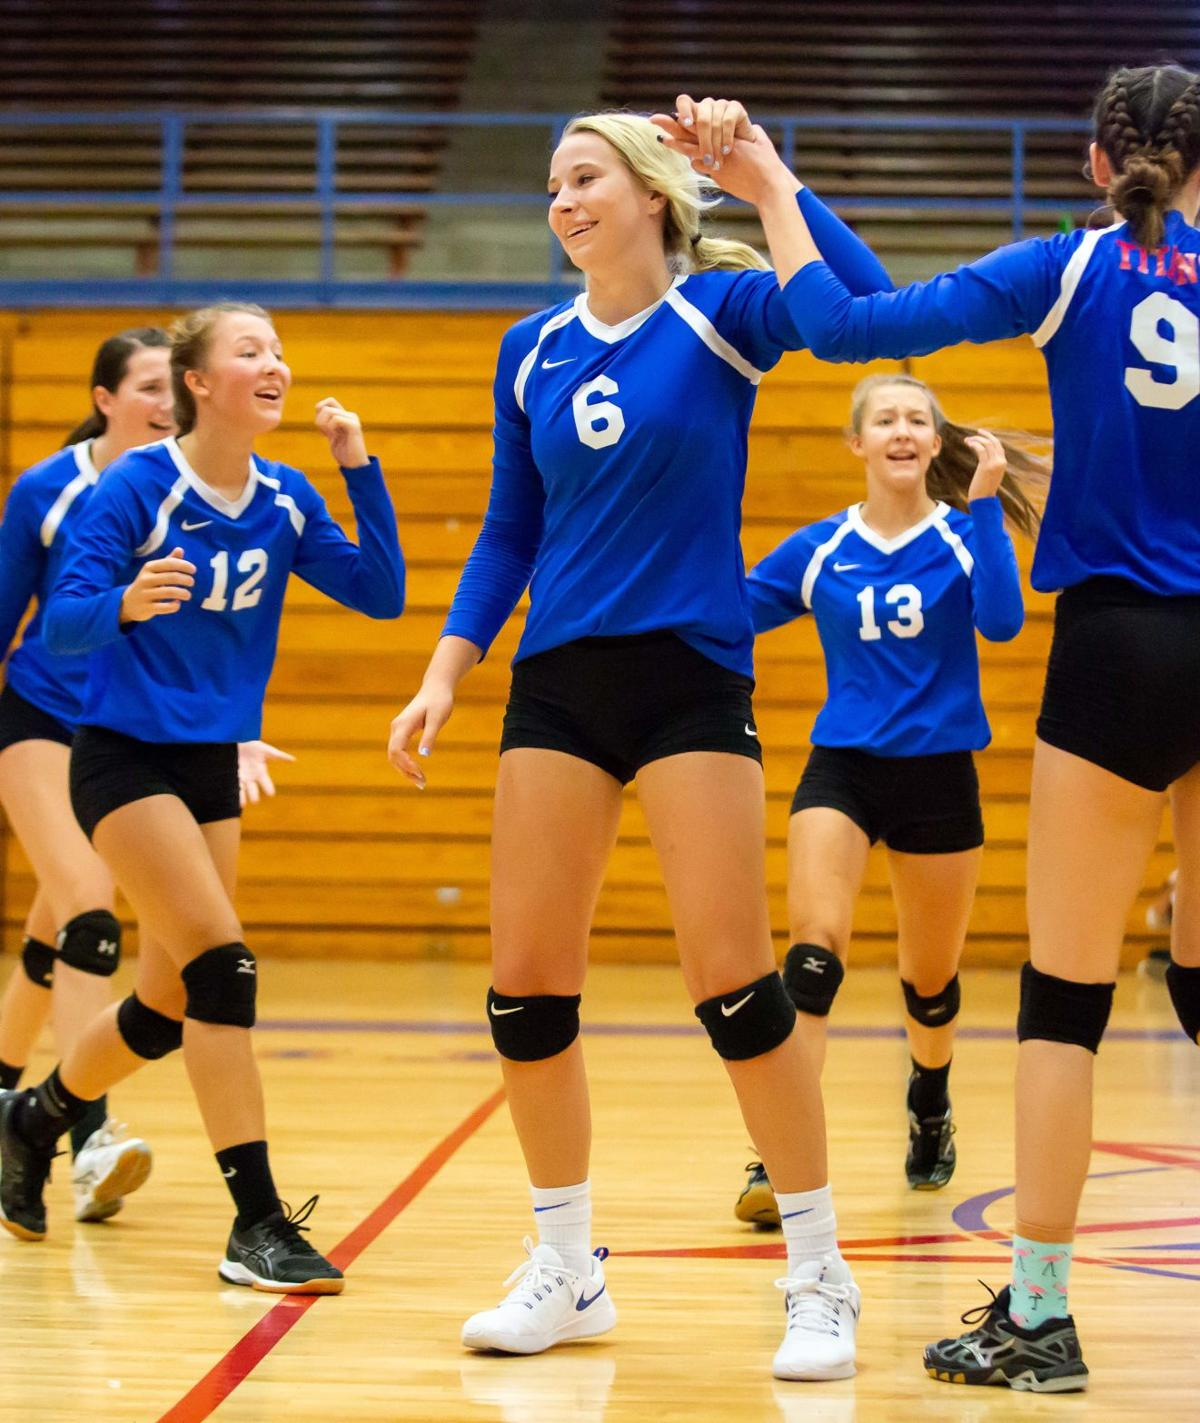 Lady Titans hold off Freedom in 5-set battle